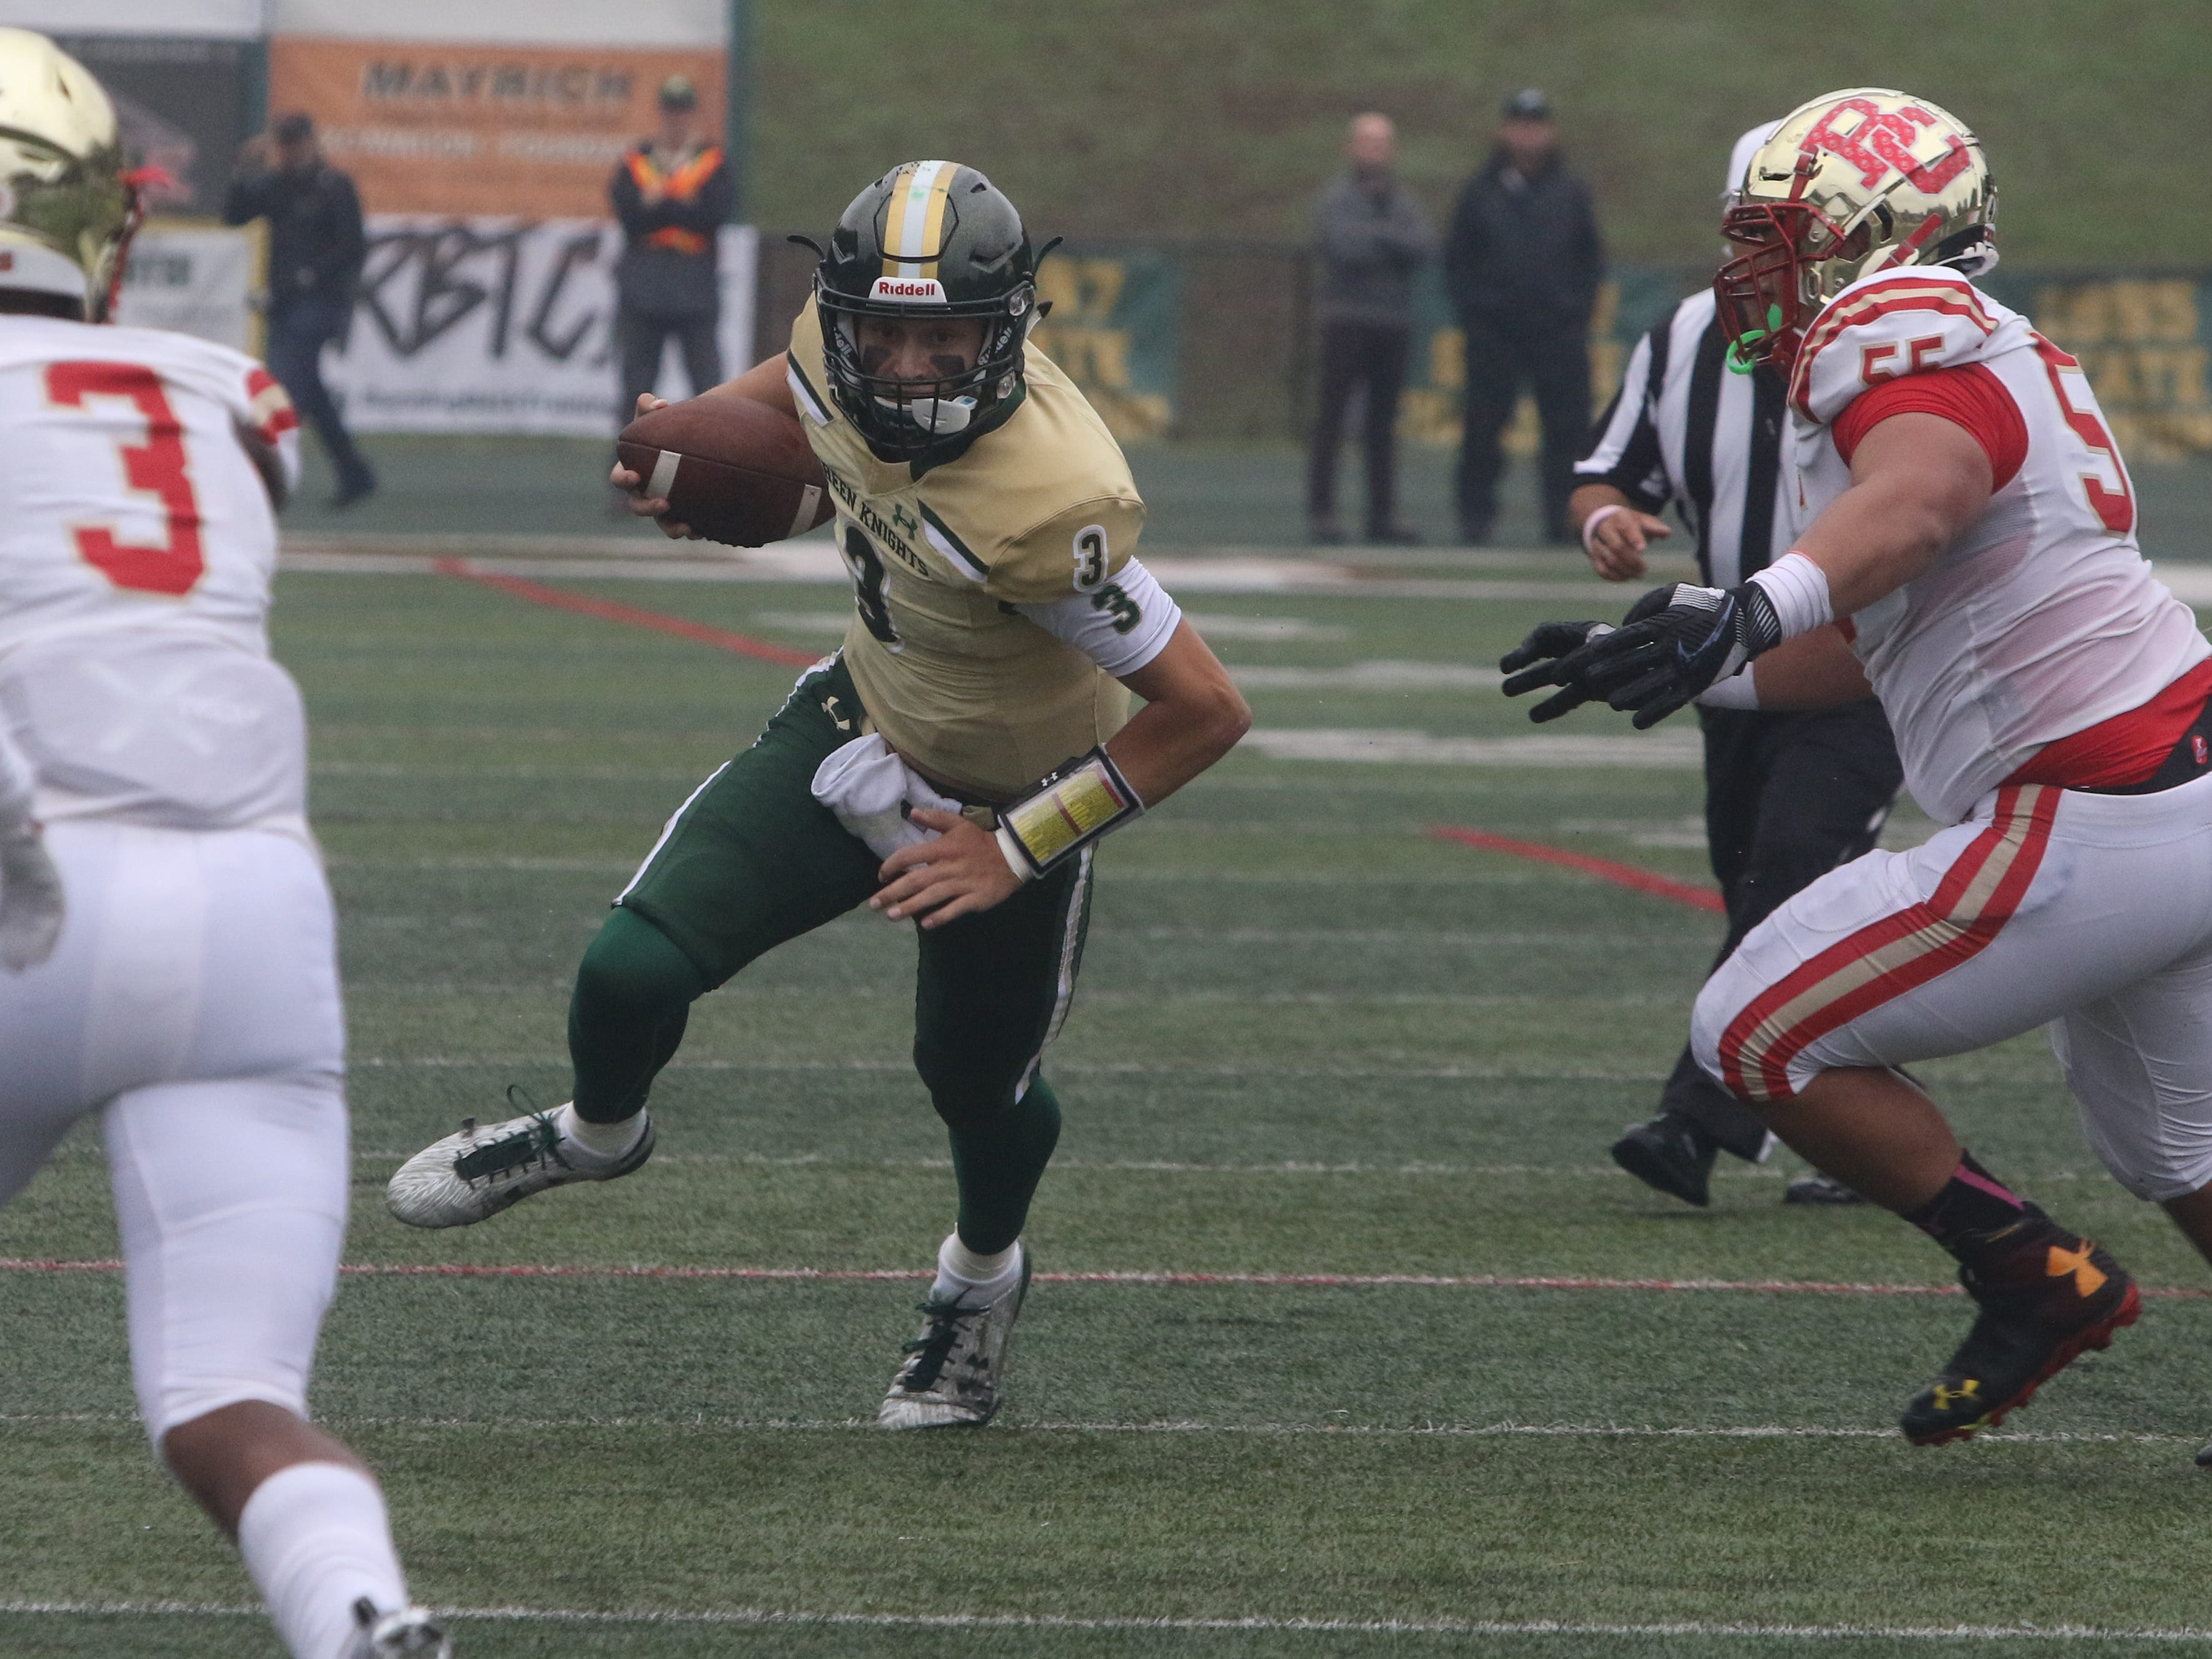 Quarterback Michael Alaimo of St.Joseph carries the ball in the first half.